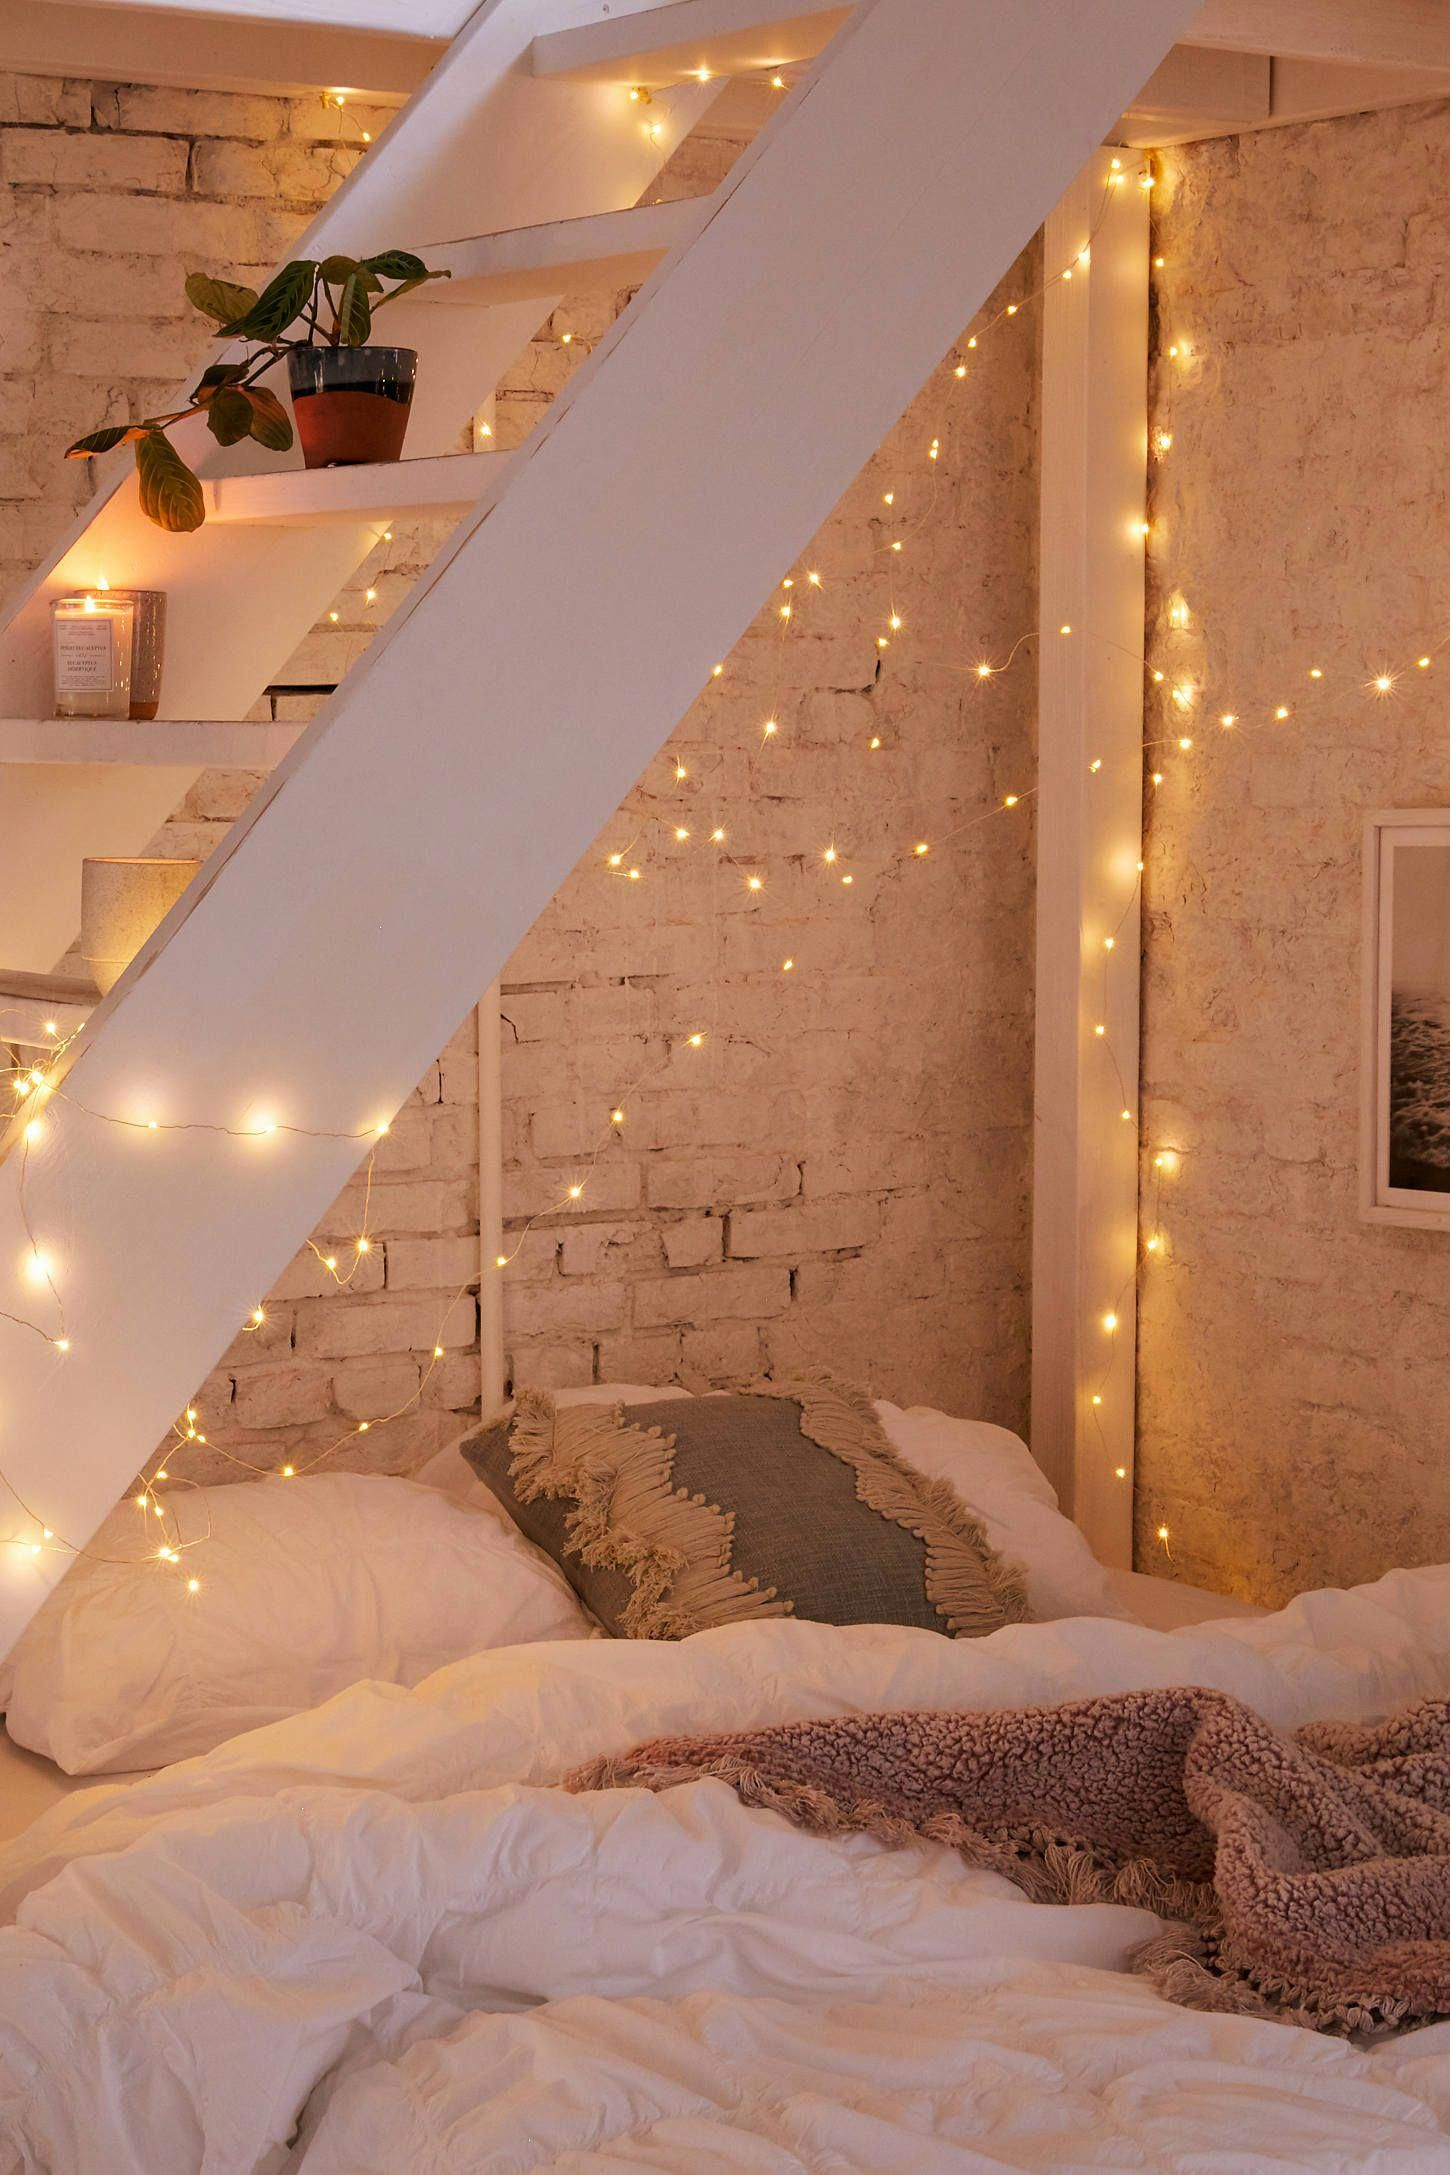 Tips and tricks for a baby room  Idée chambre, Idée déco chambre